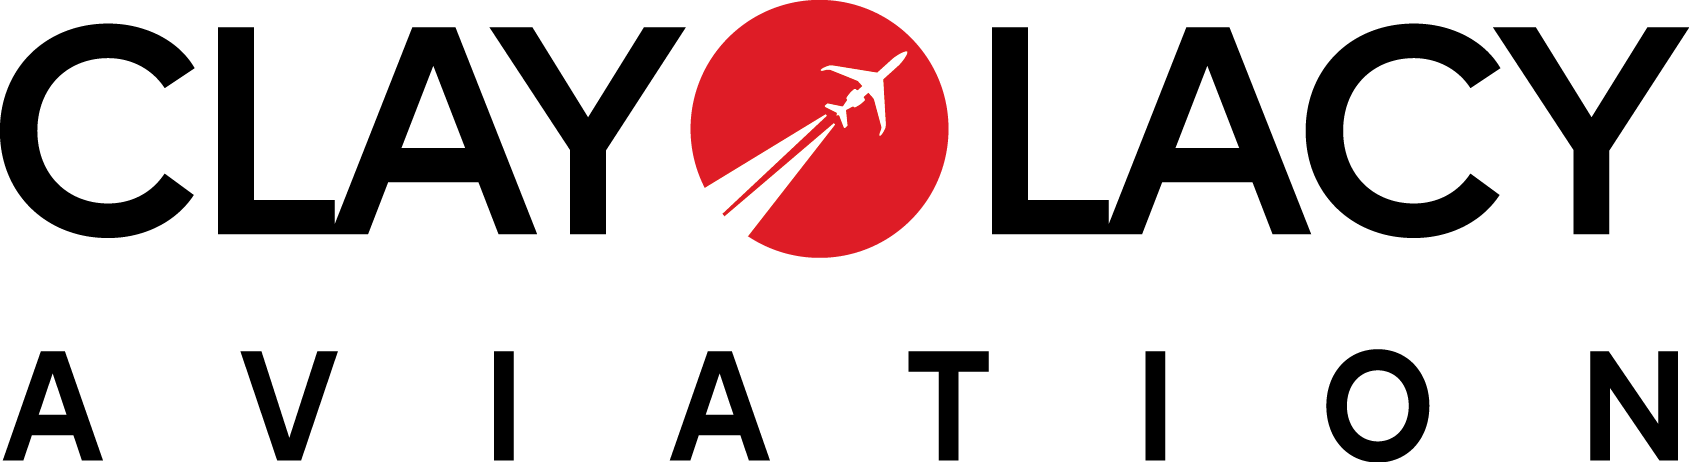 Clay Lacy Aviation logo